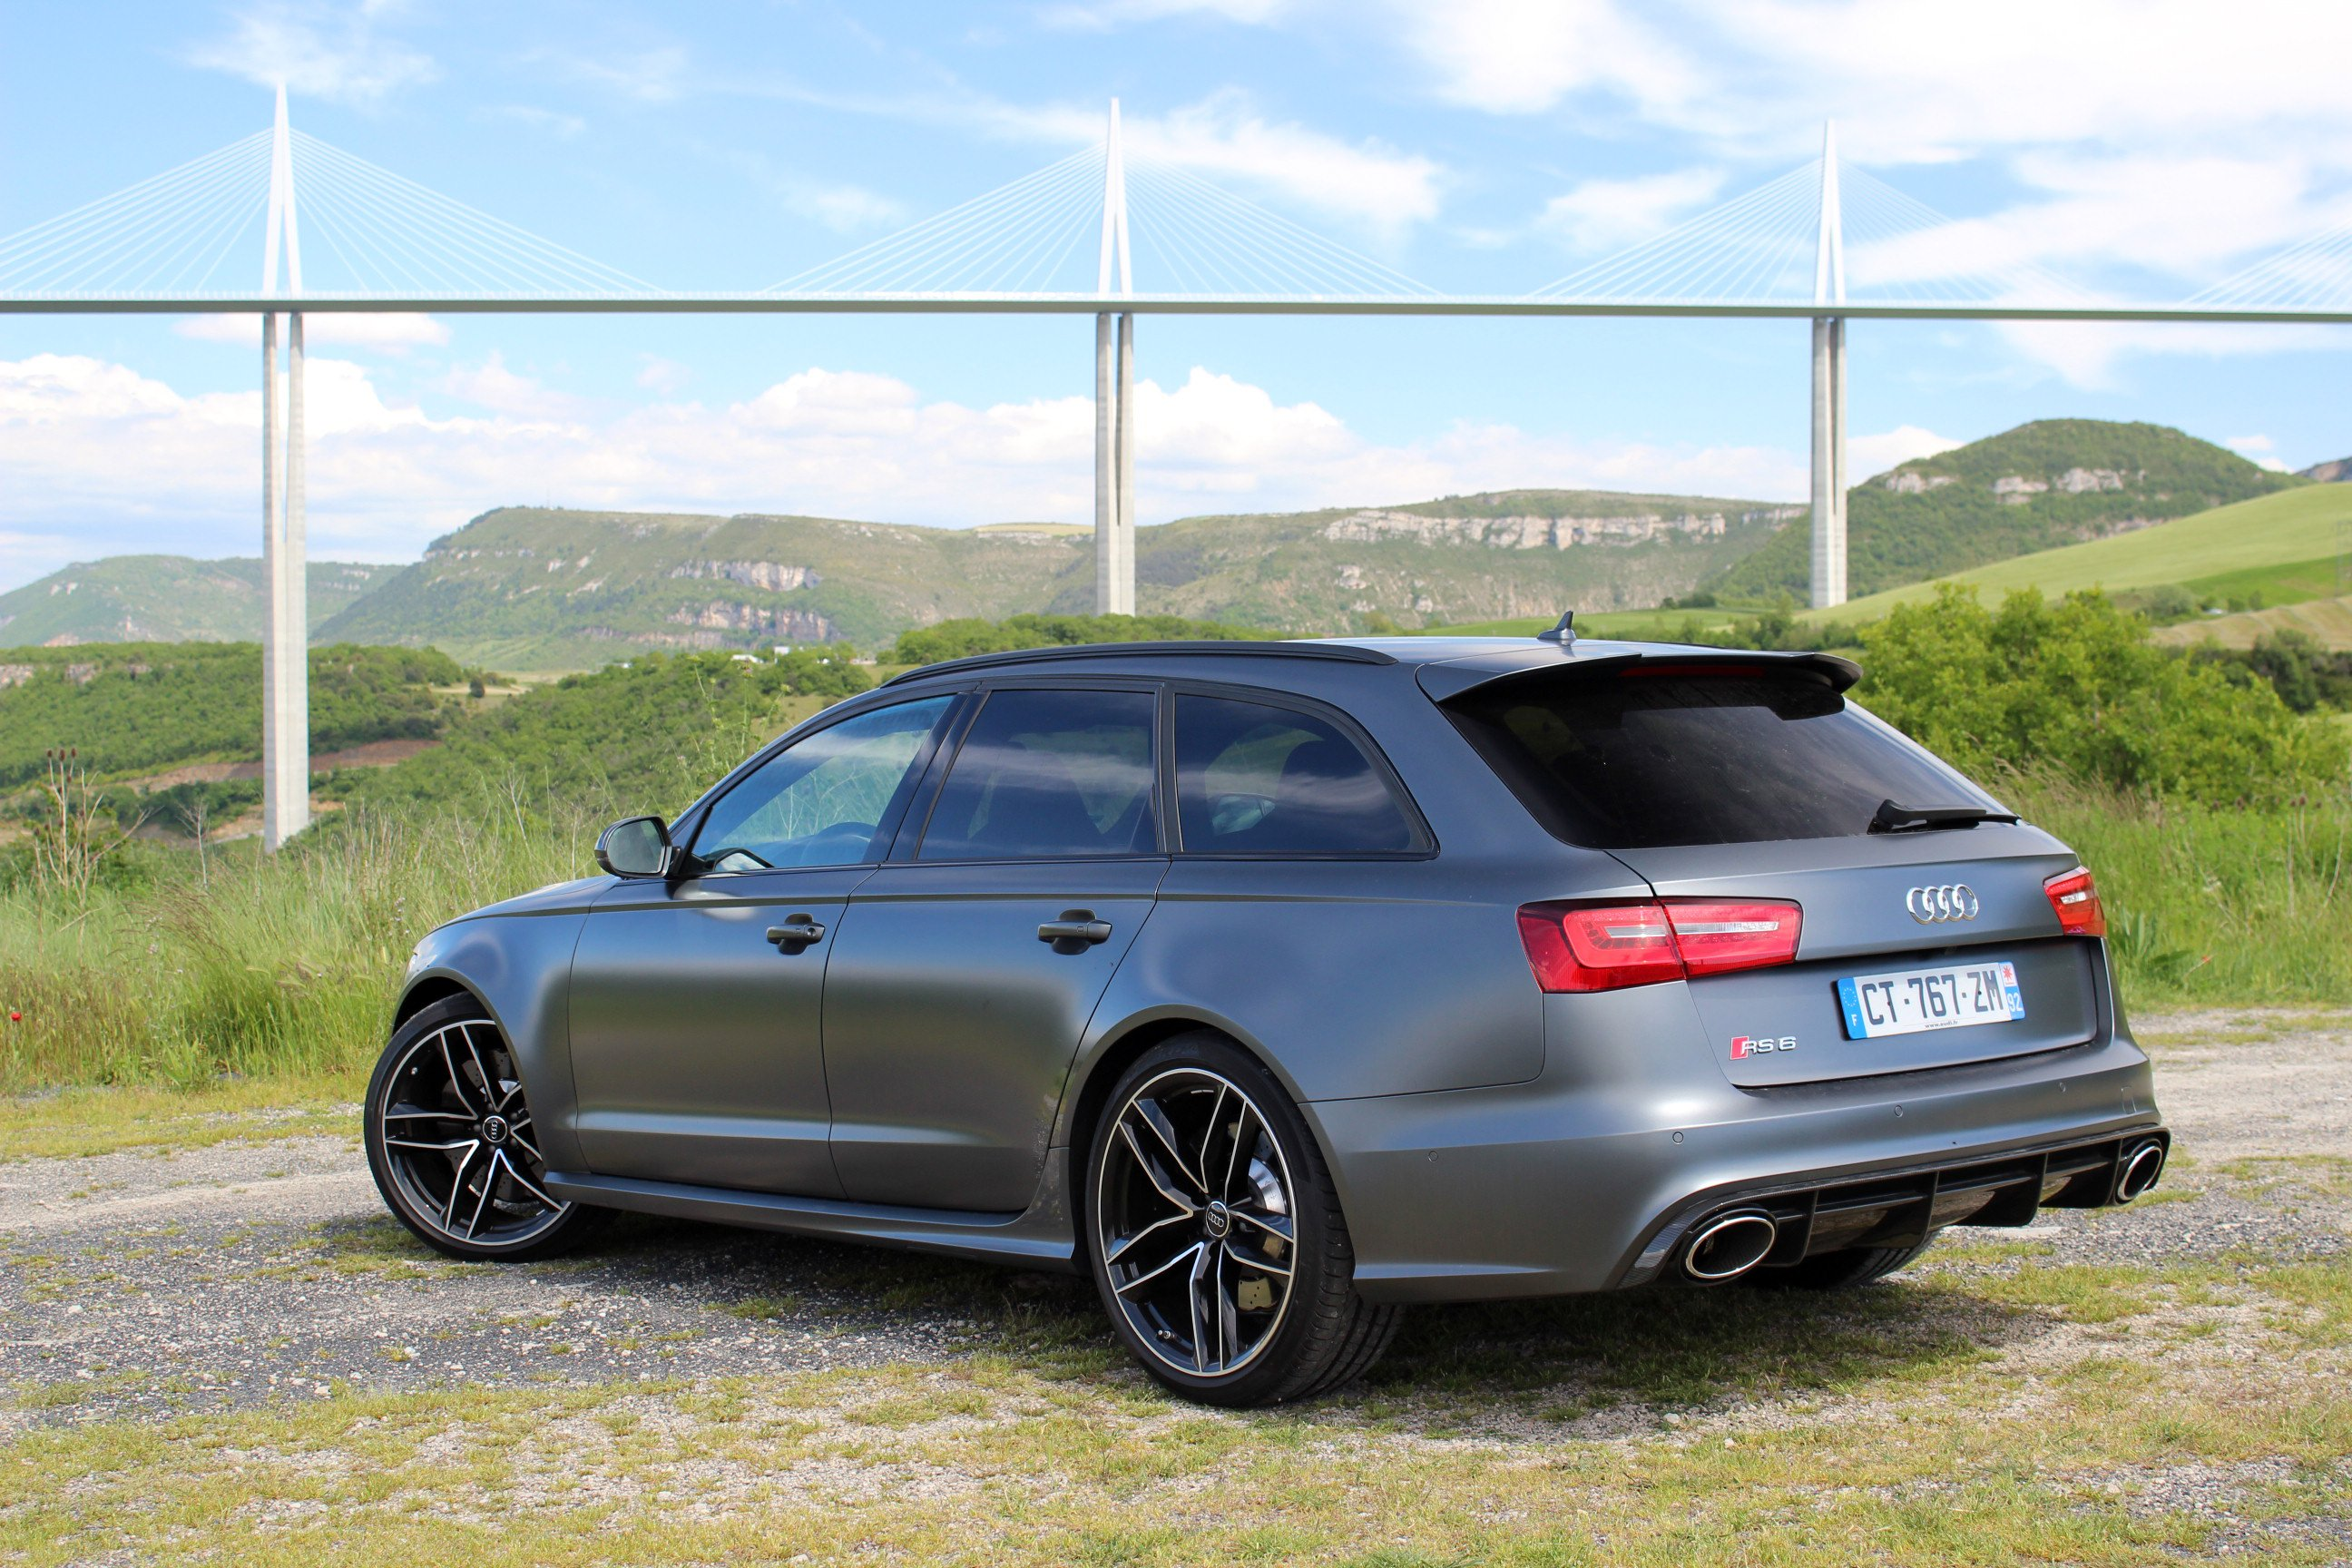 Audi Rs6 Avant 2013 Wallpaper 2592x1728 369332